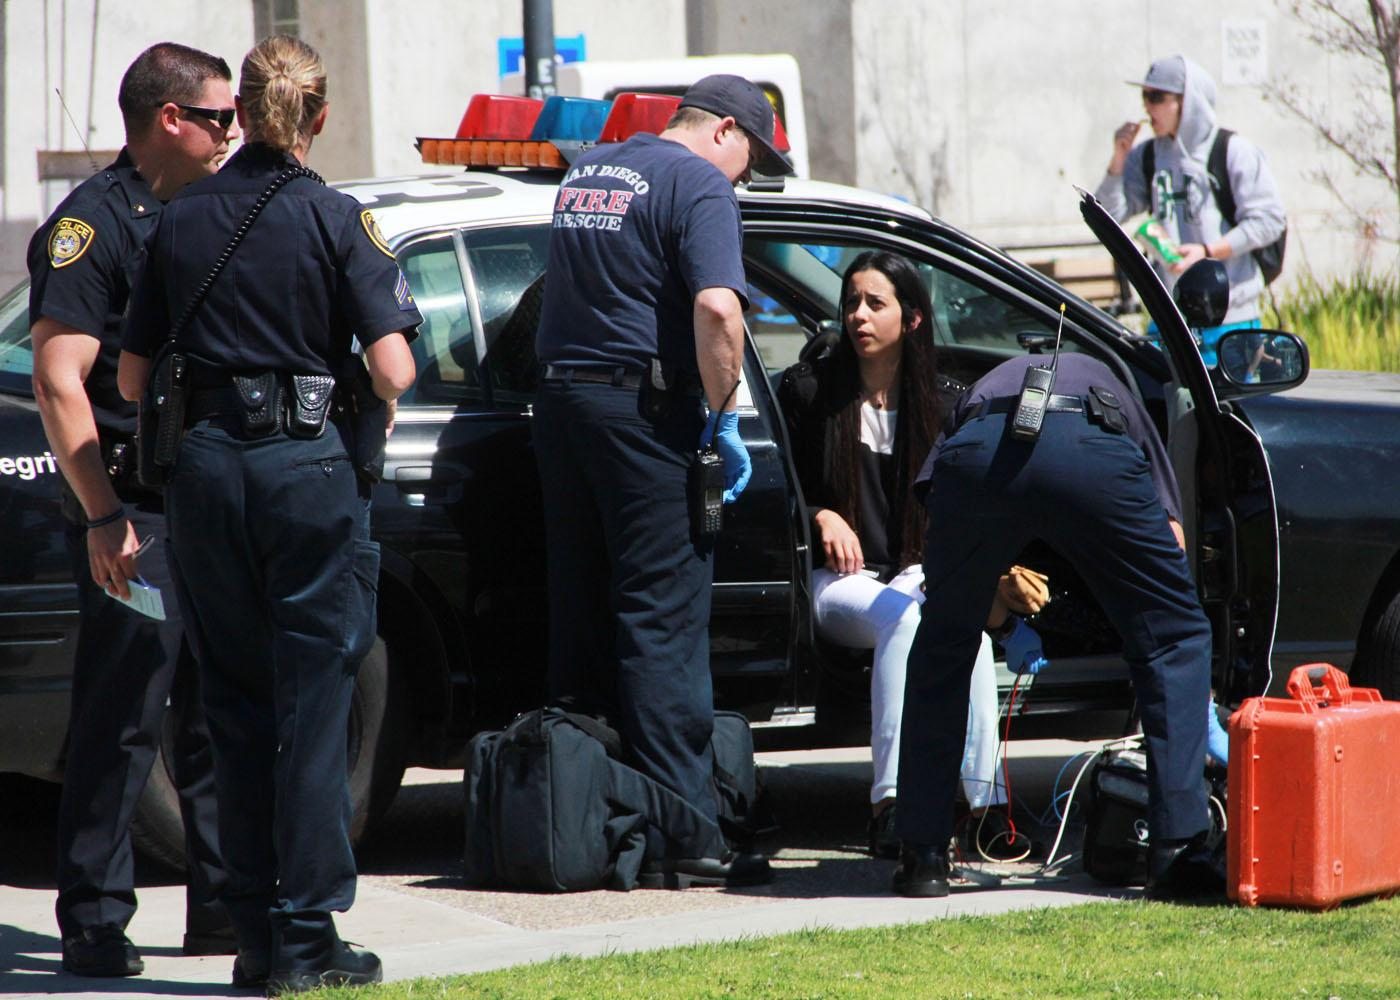 Police and EMT responded to an apparent domestic dispute call on campus in front of the LRC today around 1 p.m. It is reported that two Mesa students intervened. More details to come. Photo by M.A. Damron-Photo Editor